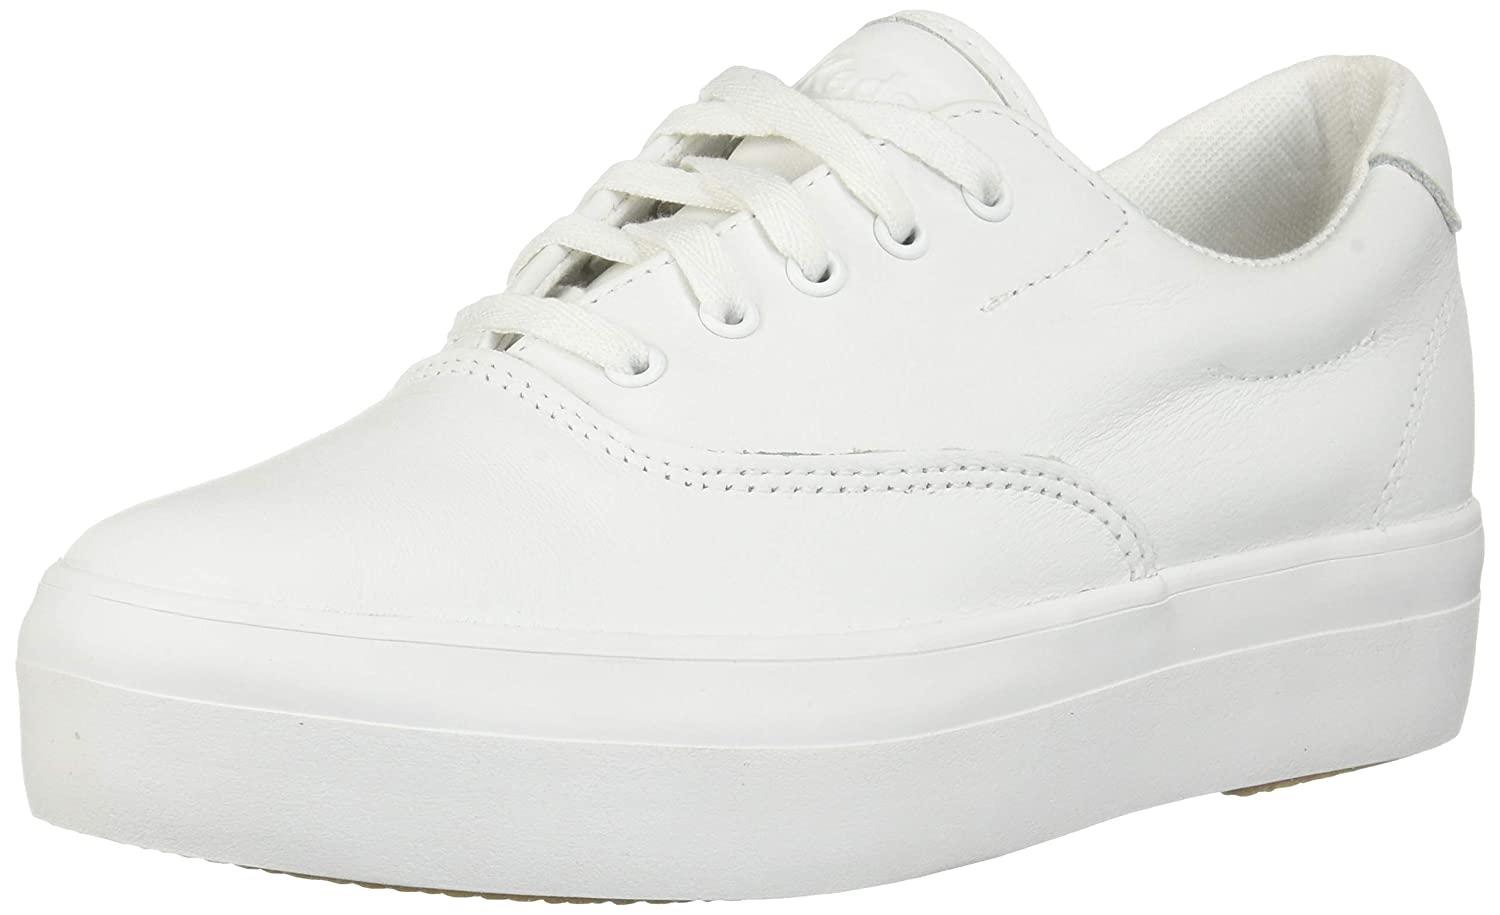 Buy Keds Rise Leather Women 7 White at